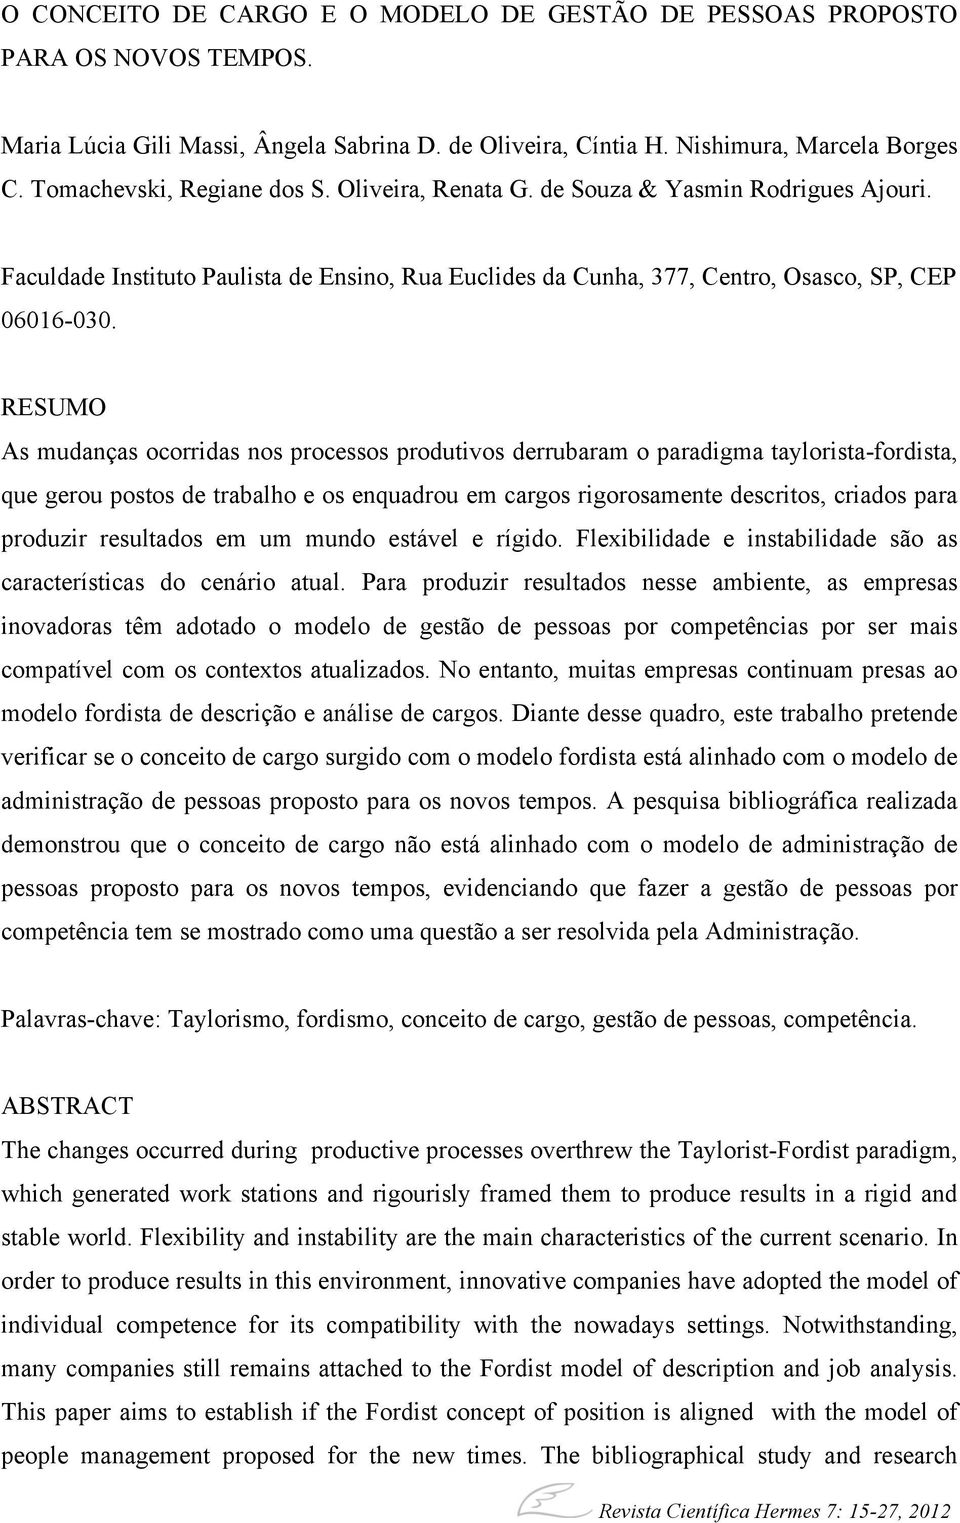 the concepts of taylorism and fordism Definition of fordism: a manufacturing philosophy that aims to achieve higher productivity by standardizing the output, using conveyor assembly lines, and breaking the work into small deskilled tasks whereas taylorism (on.